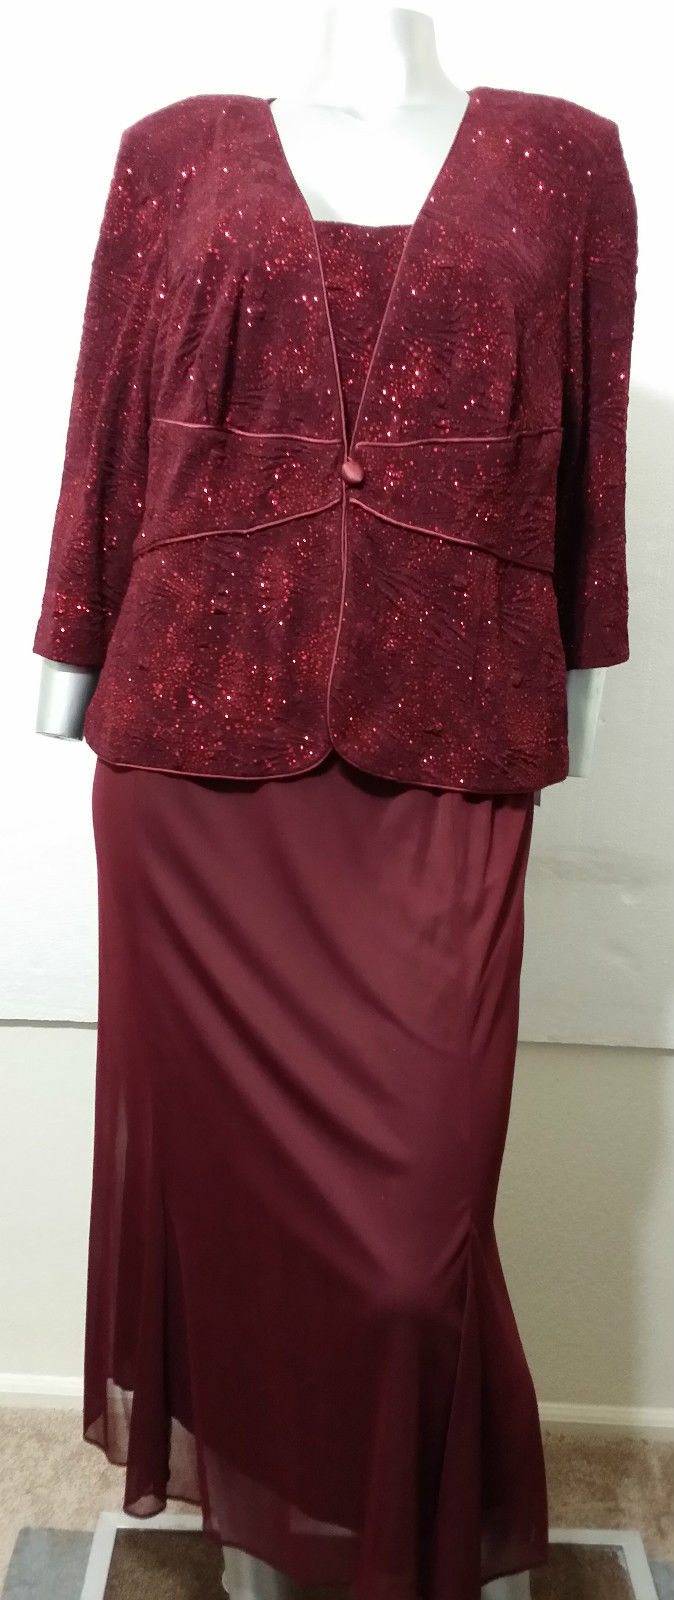 ALEX EVENINGS Dress & Blazer Size 14W   2 pc   FORMAL/OCCASION  Retail $210.00